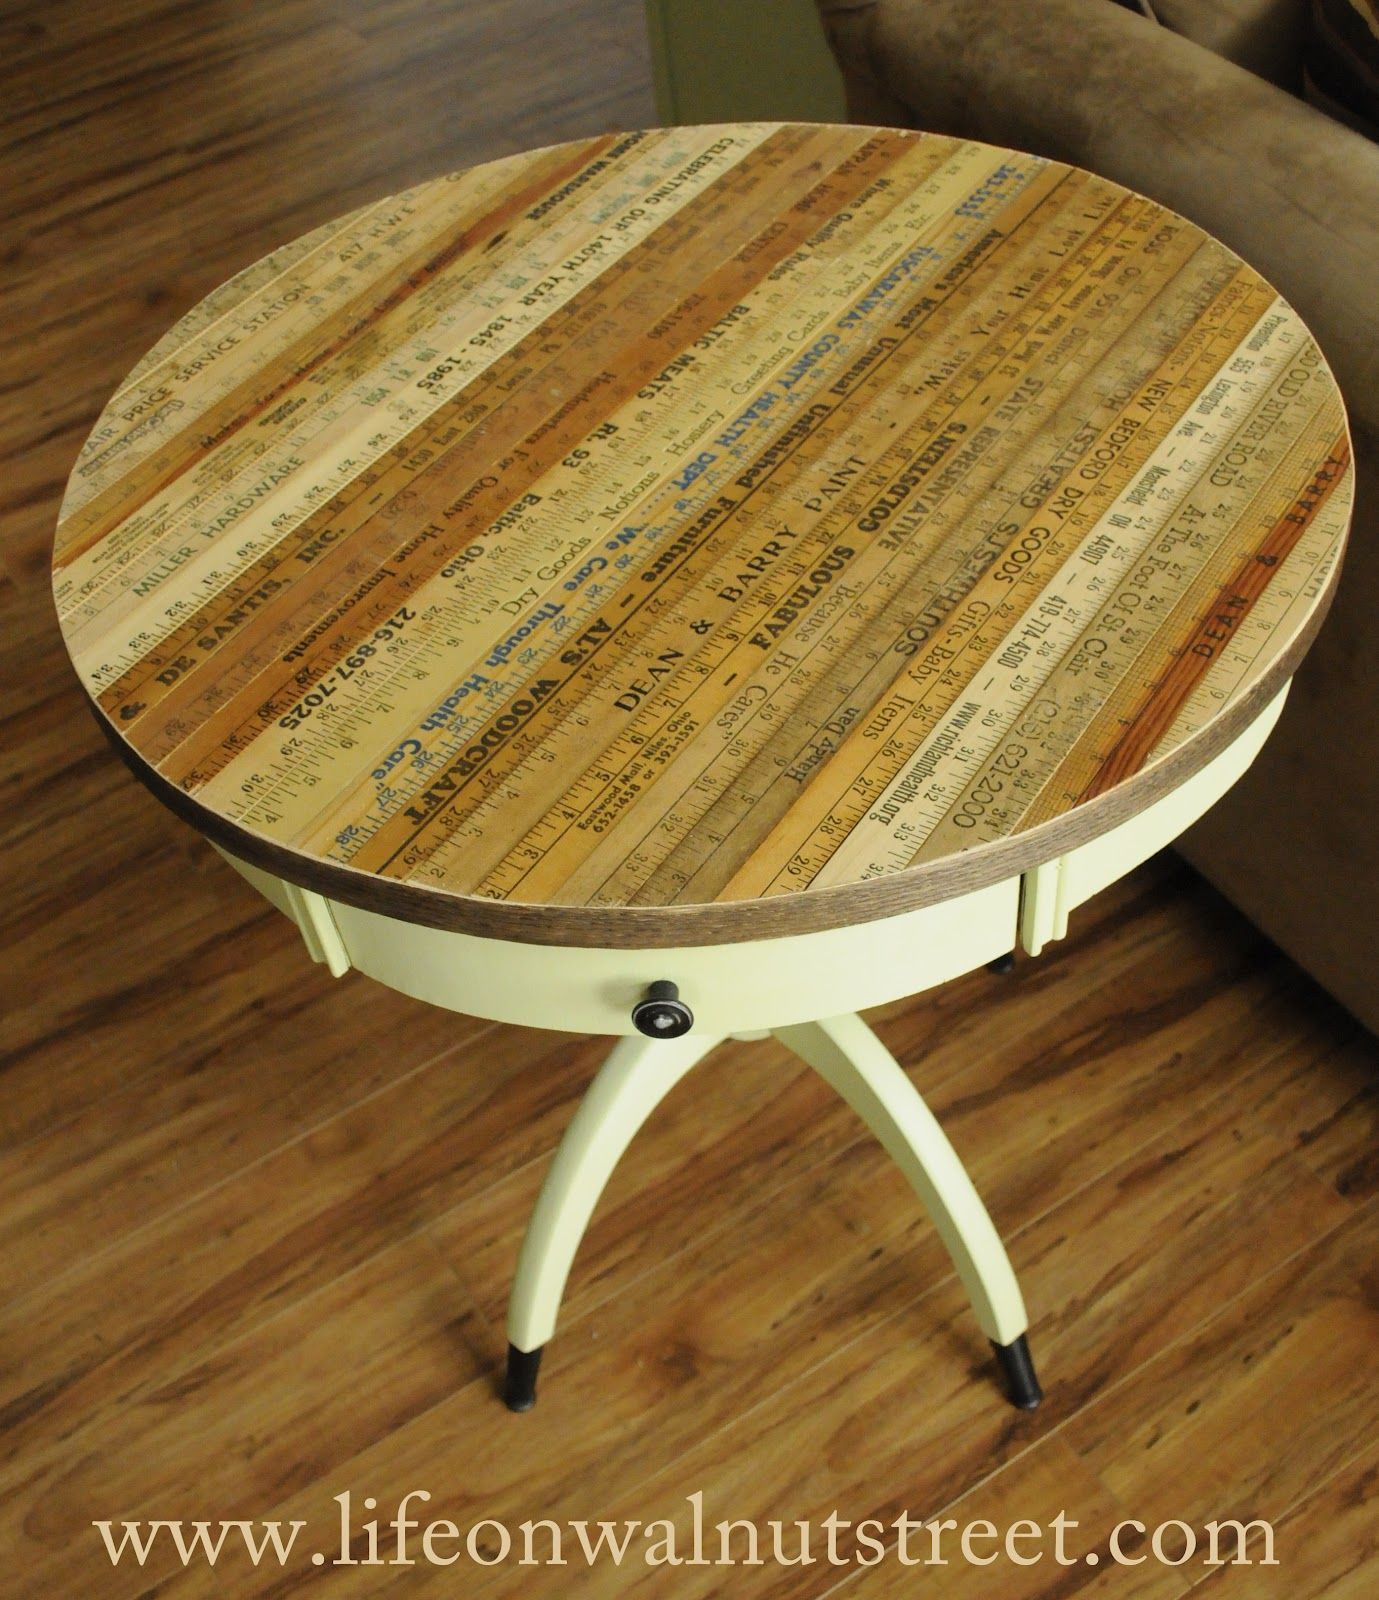 Life on Walnut Street: Drum Table Rescue - My Weekend Project